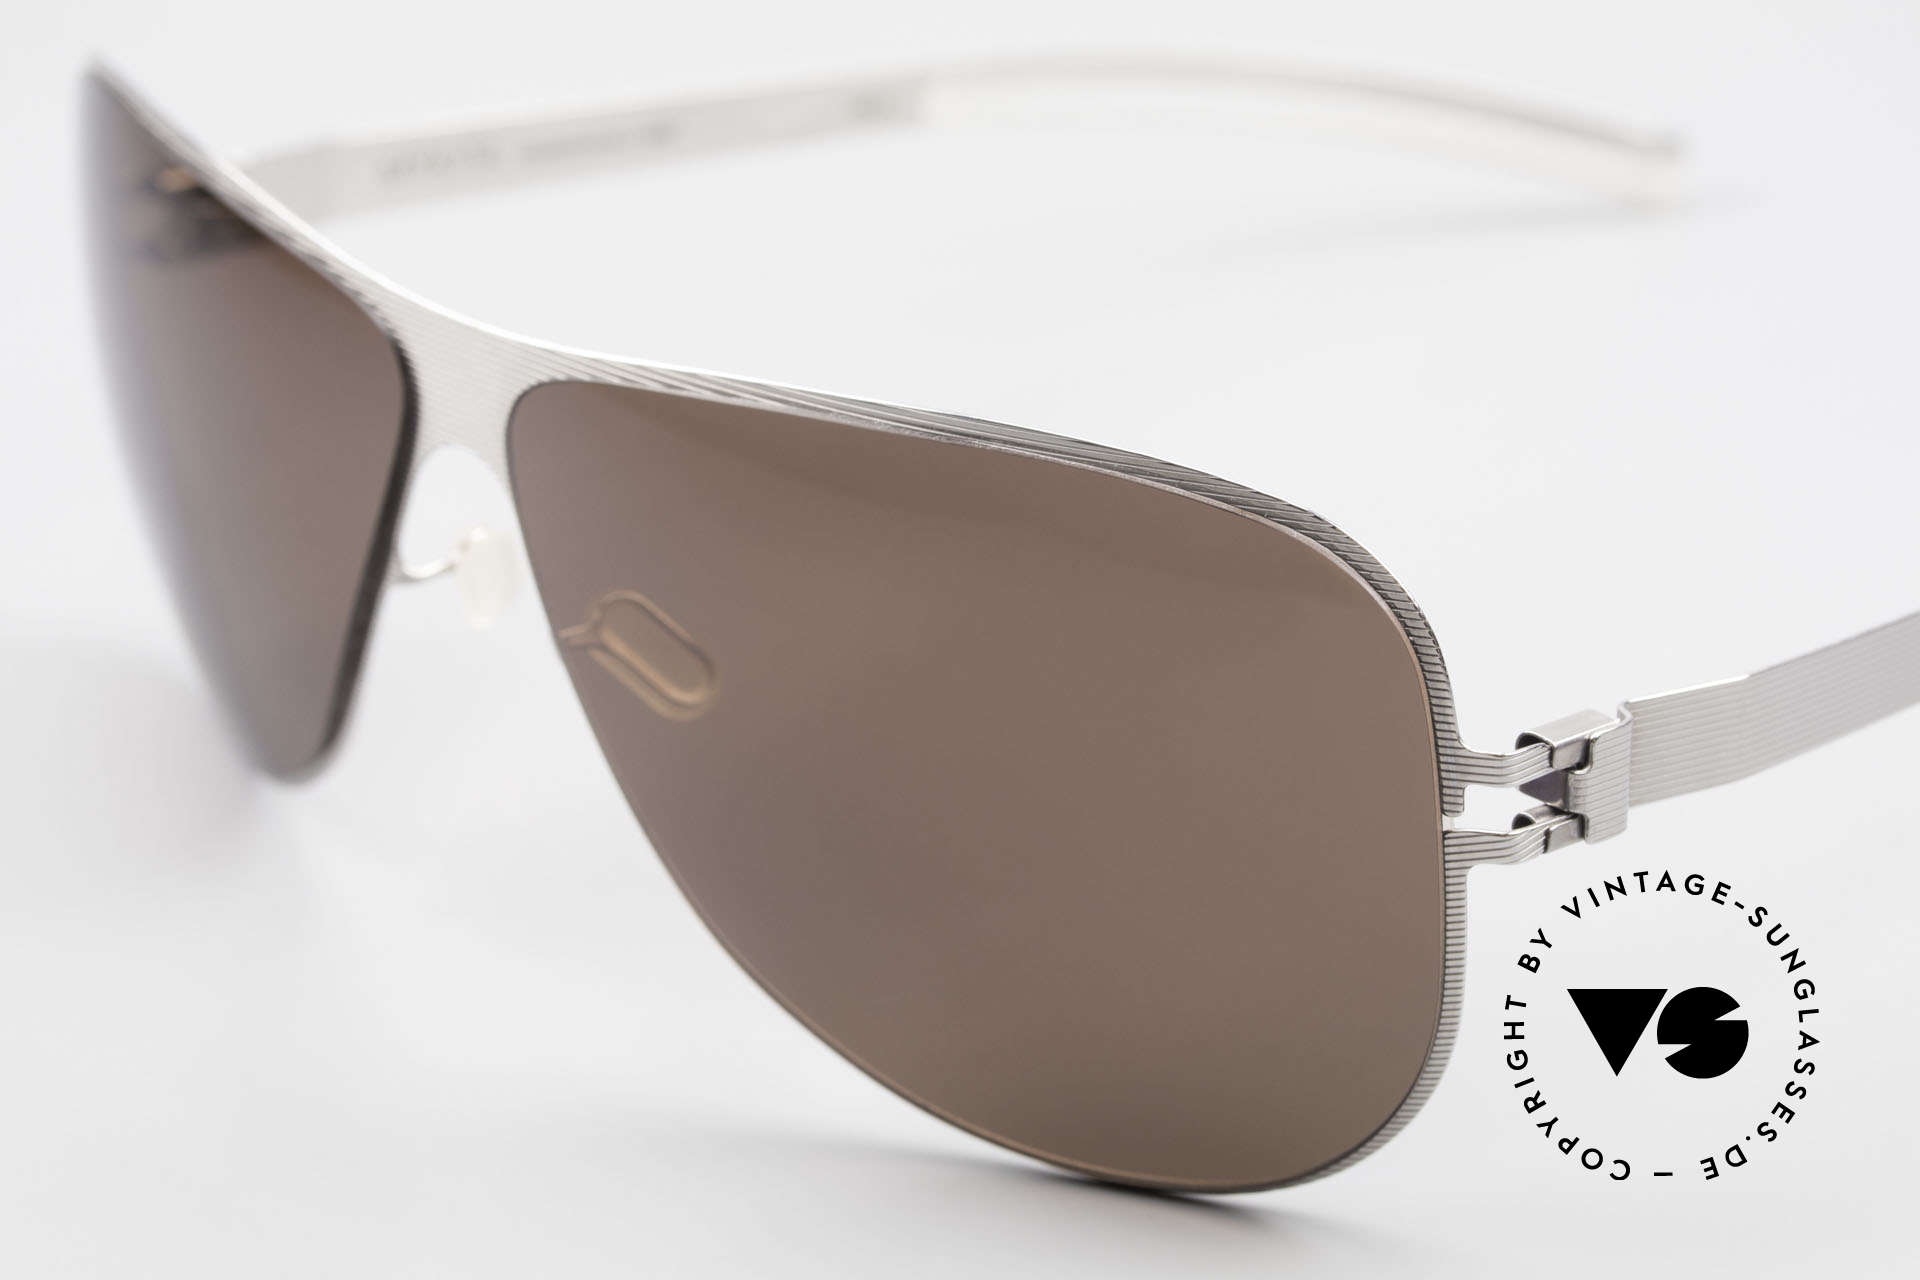 Mykita Ava Ladies Polarized Shades 2007's, innovative and flexible metal frame = One size fits all!, Made for Women